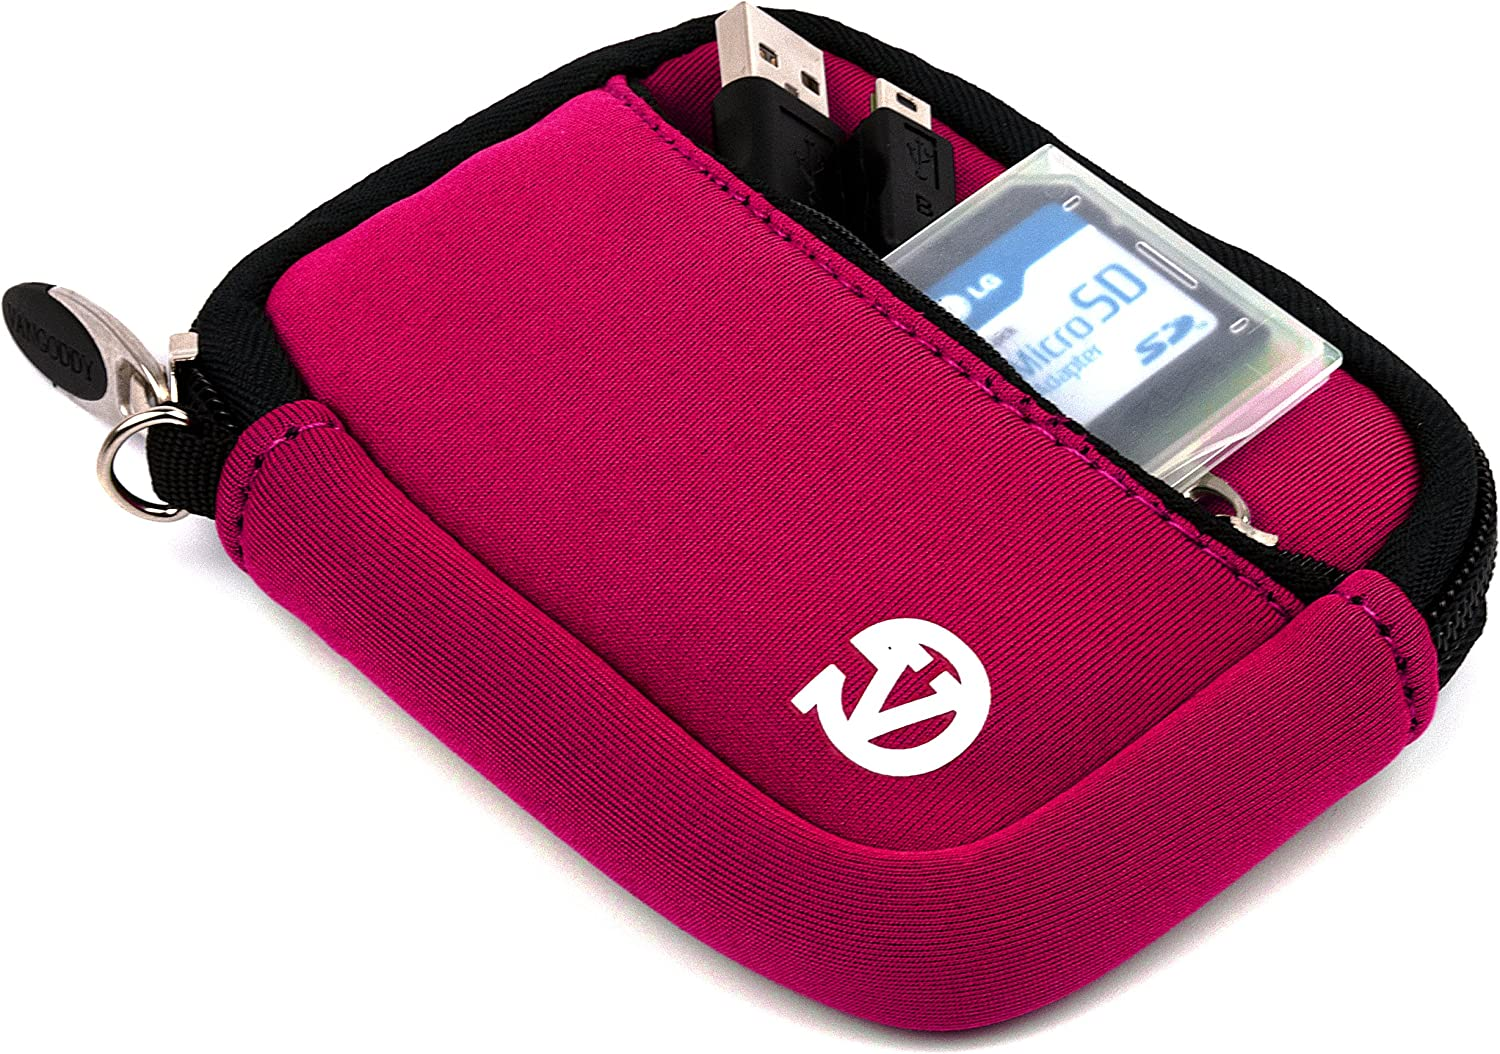 VanGoddy Mini Glove Sleeve Pouch Case for Samsung Point and Shoot Digital Cameras Magenta and Screen Protector and Mini Tripod Stand